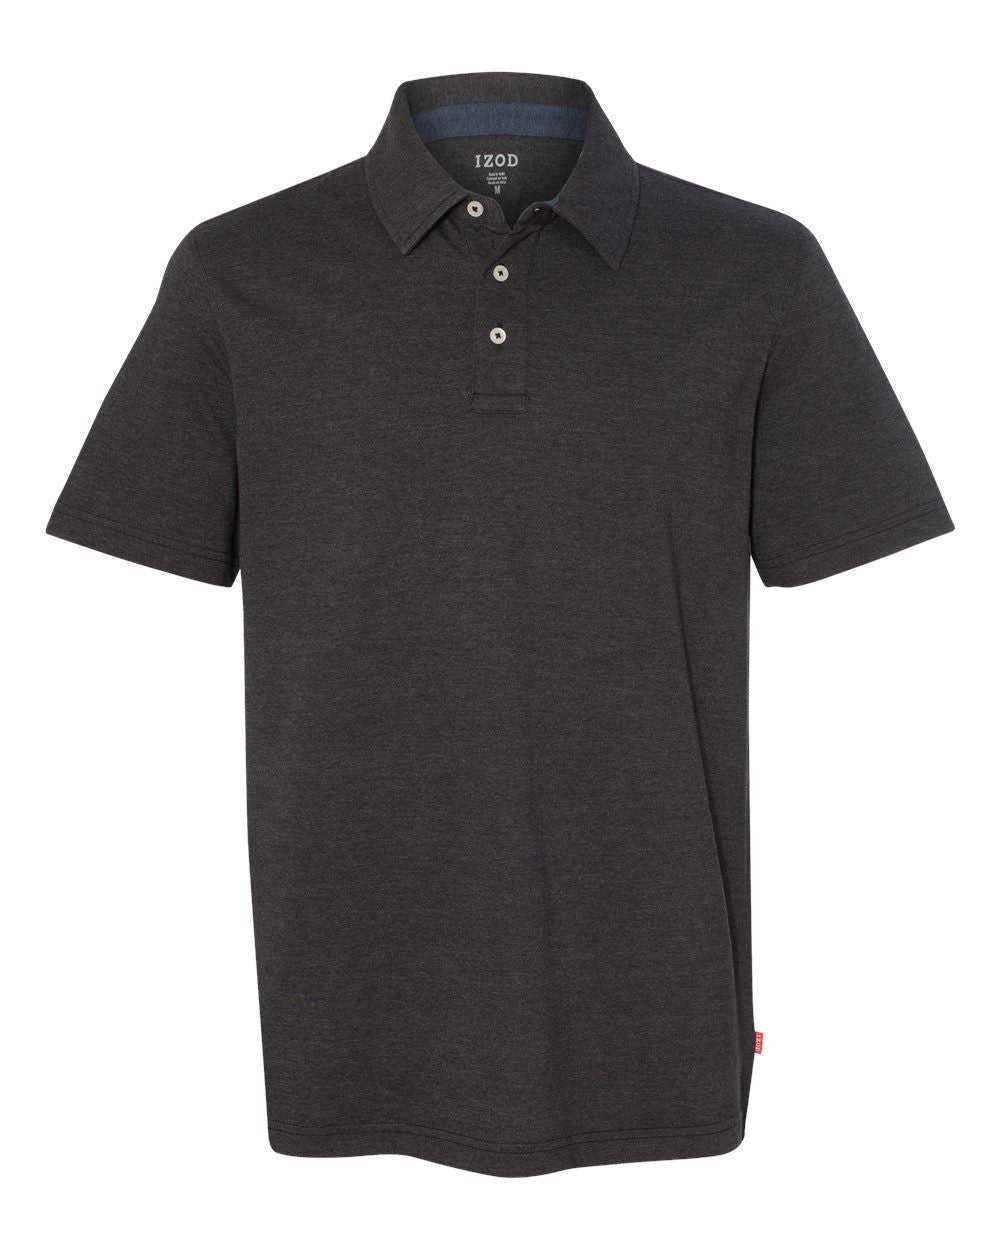 Jersey Polo by IZOD - Discountedrack.com